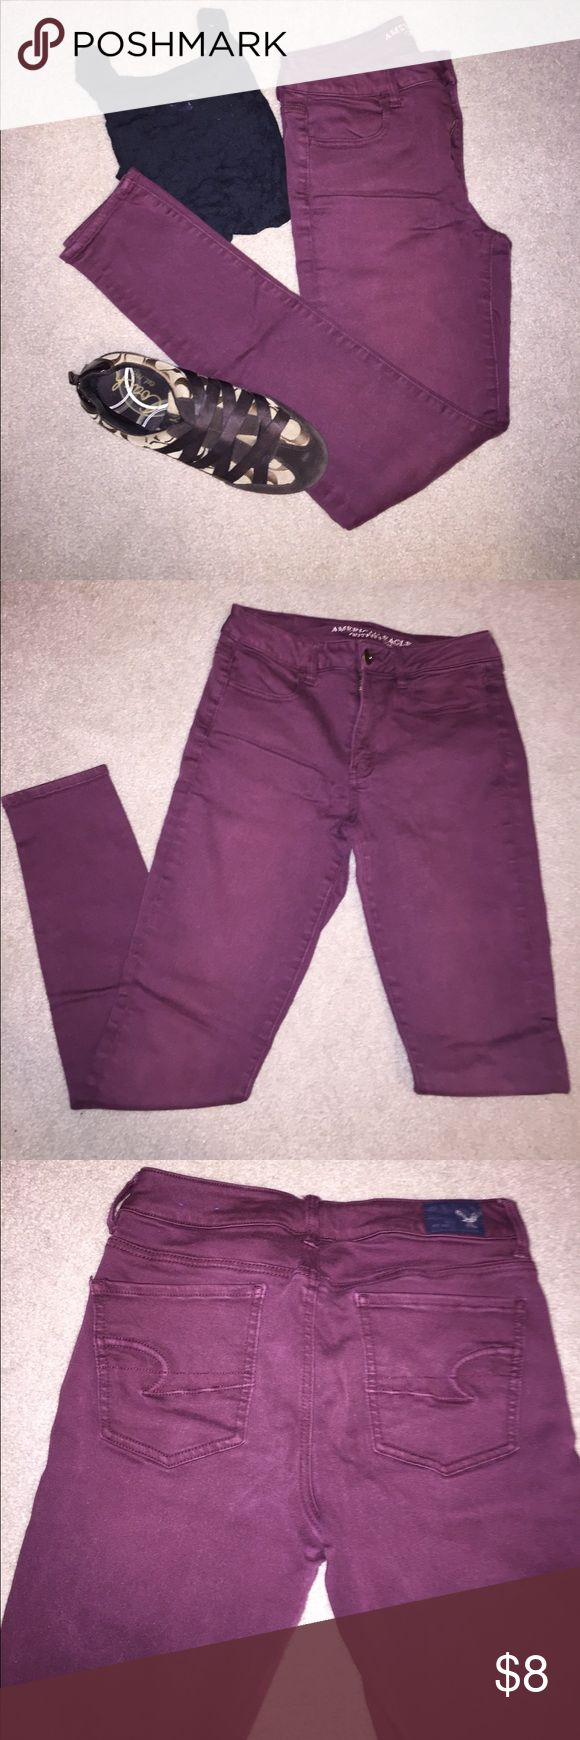 Maroon High Rise Jeggings High waisted size 6 maroon leggings from American Eagle. Add a pop of color to your wardrobe with these stretchy high waisted pants. Perfect for every day wear. Hardly worn with no visible signs of wear. American Eagle Outfitters Jeans Skinny